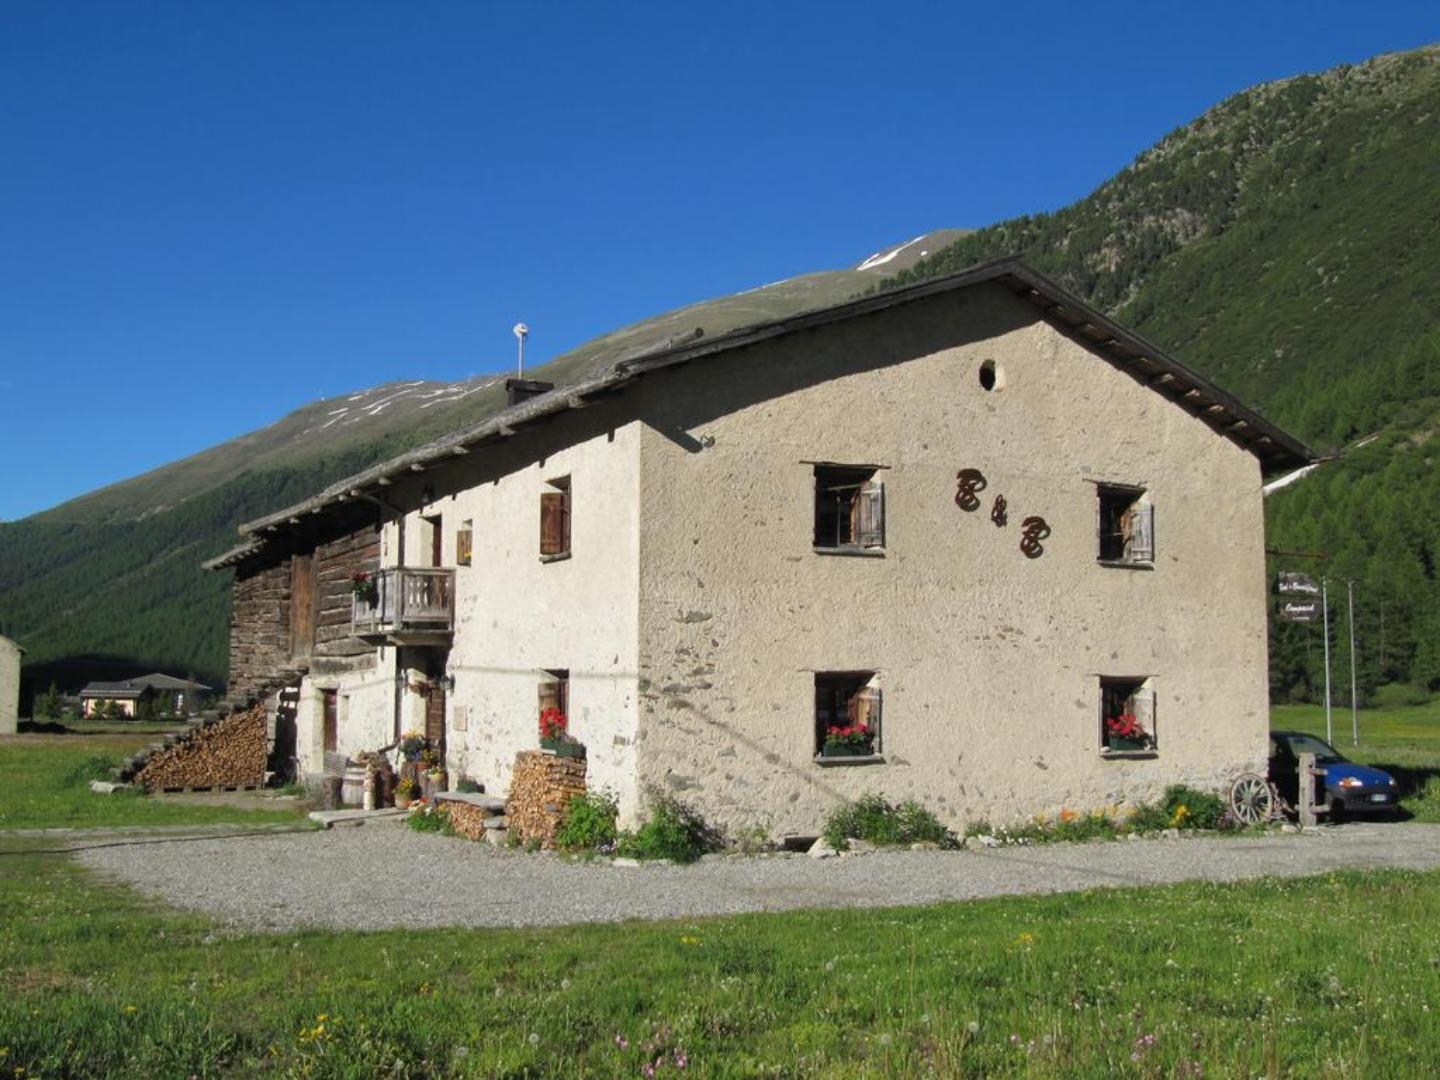 A large brick building with a mountain in the background at Bed & Breakfast Campaciol.